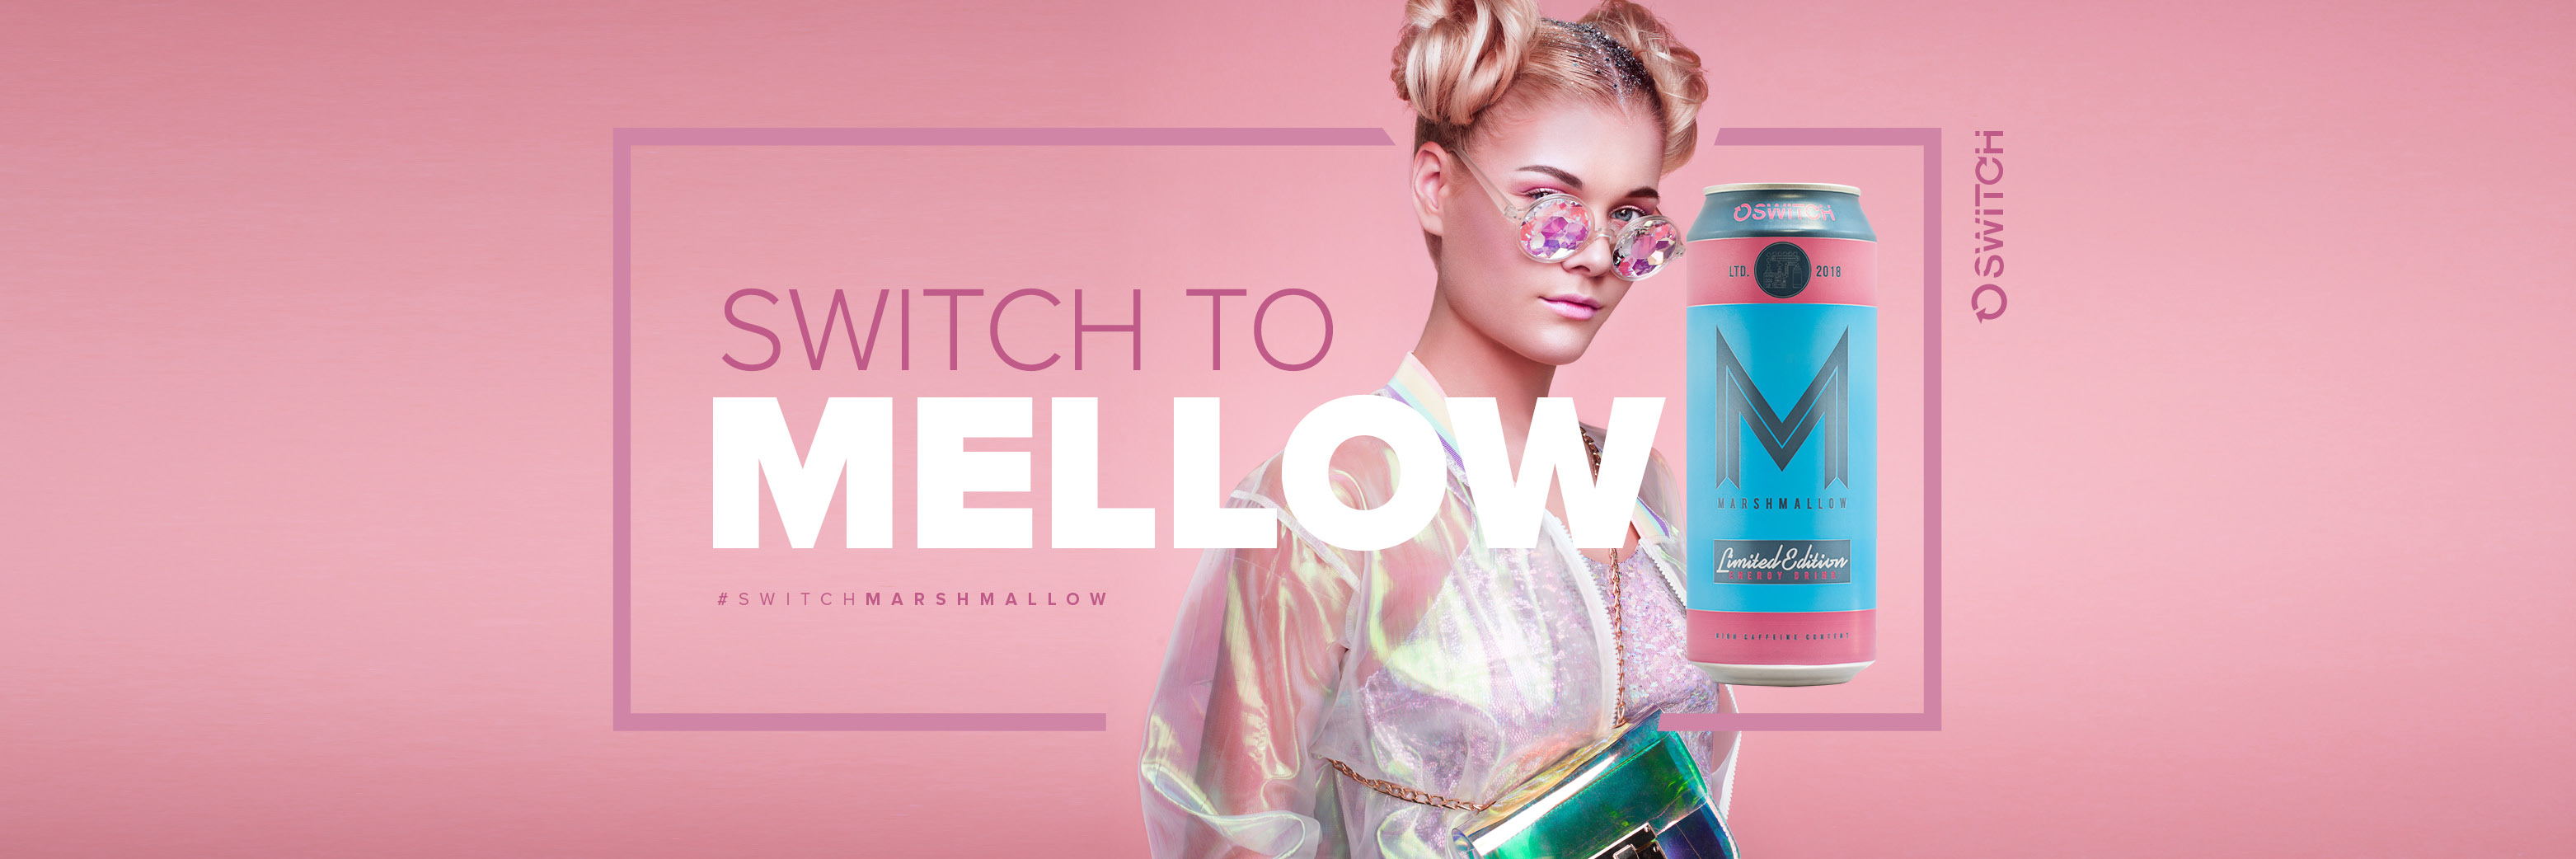 Switch to mellow